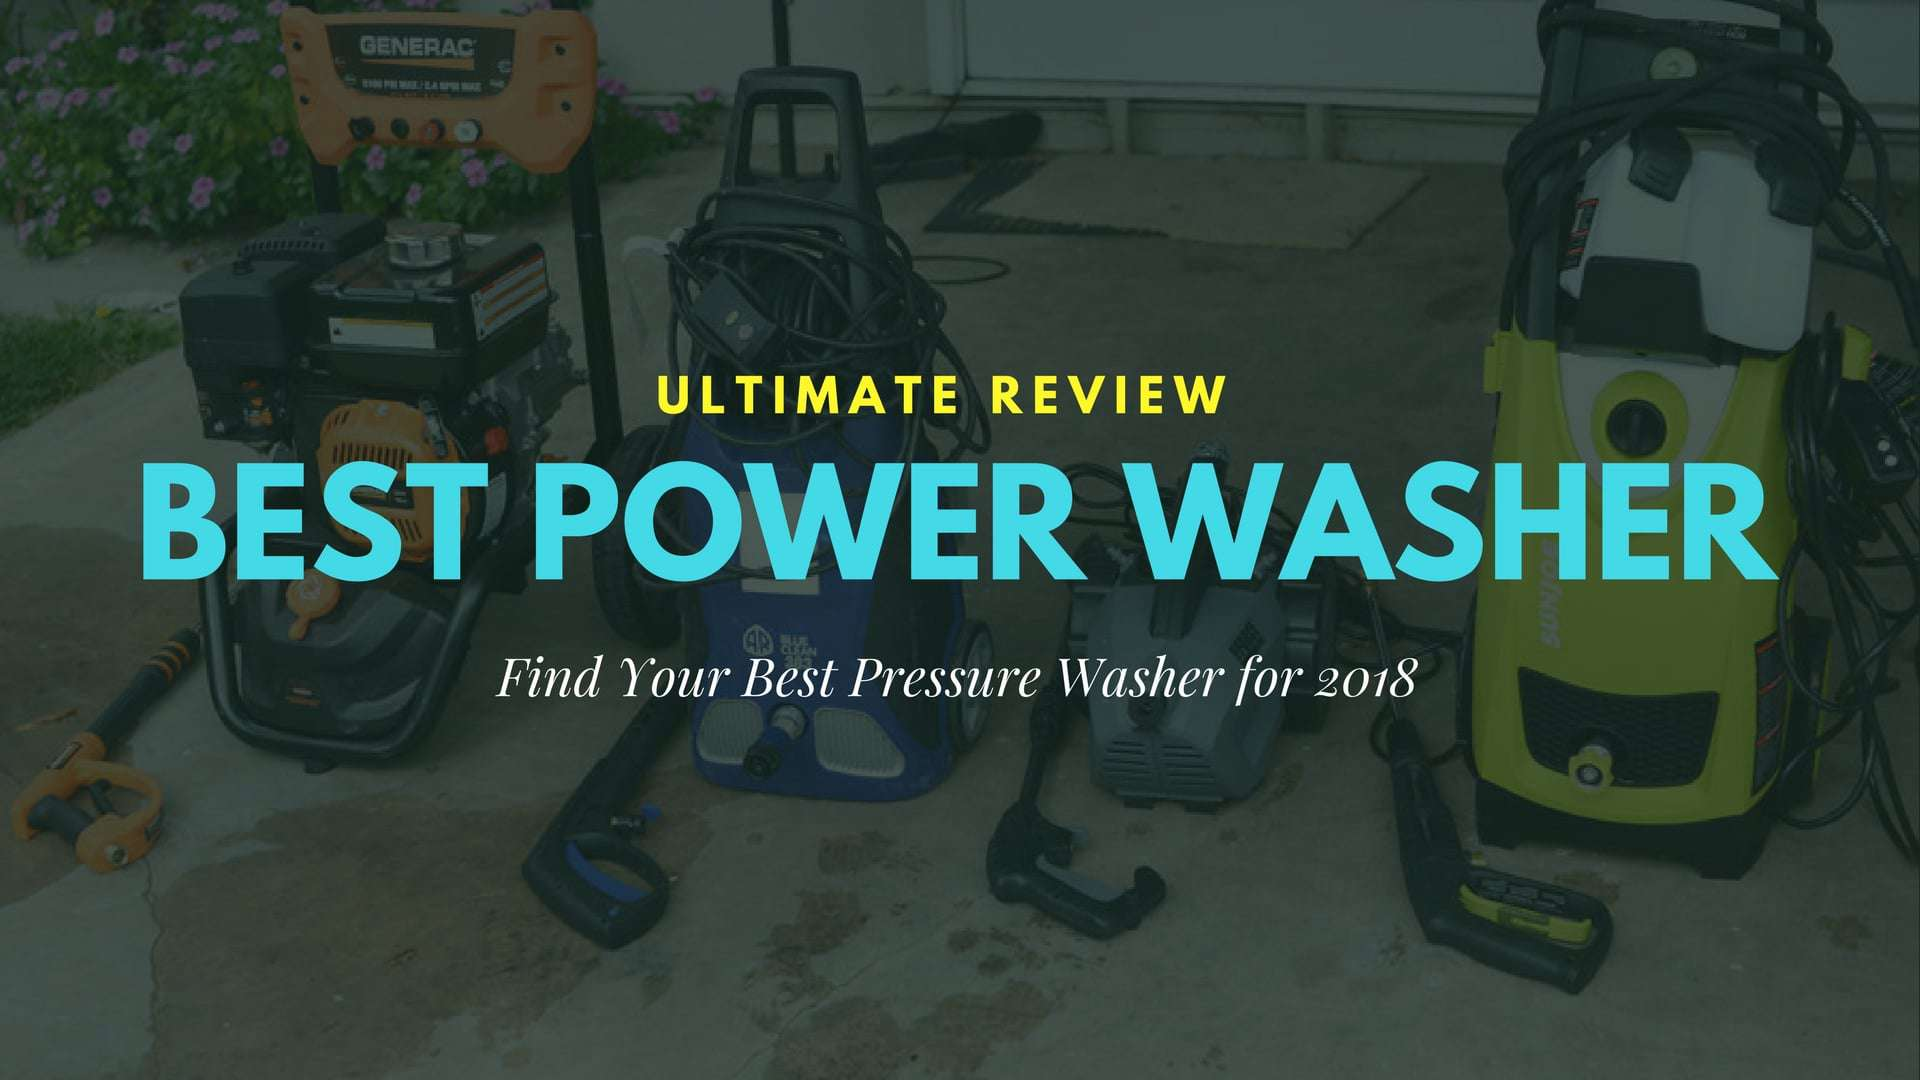 10 Best Power Washer for home uses: Perfect wash without breaking your bank (2018)